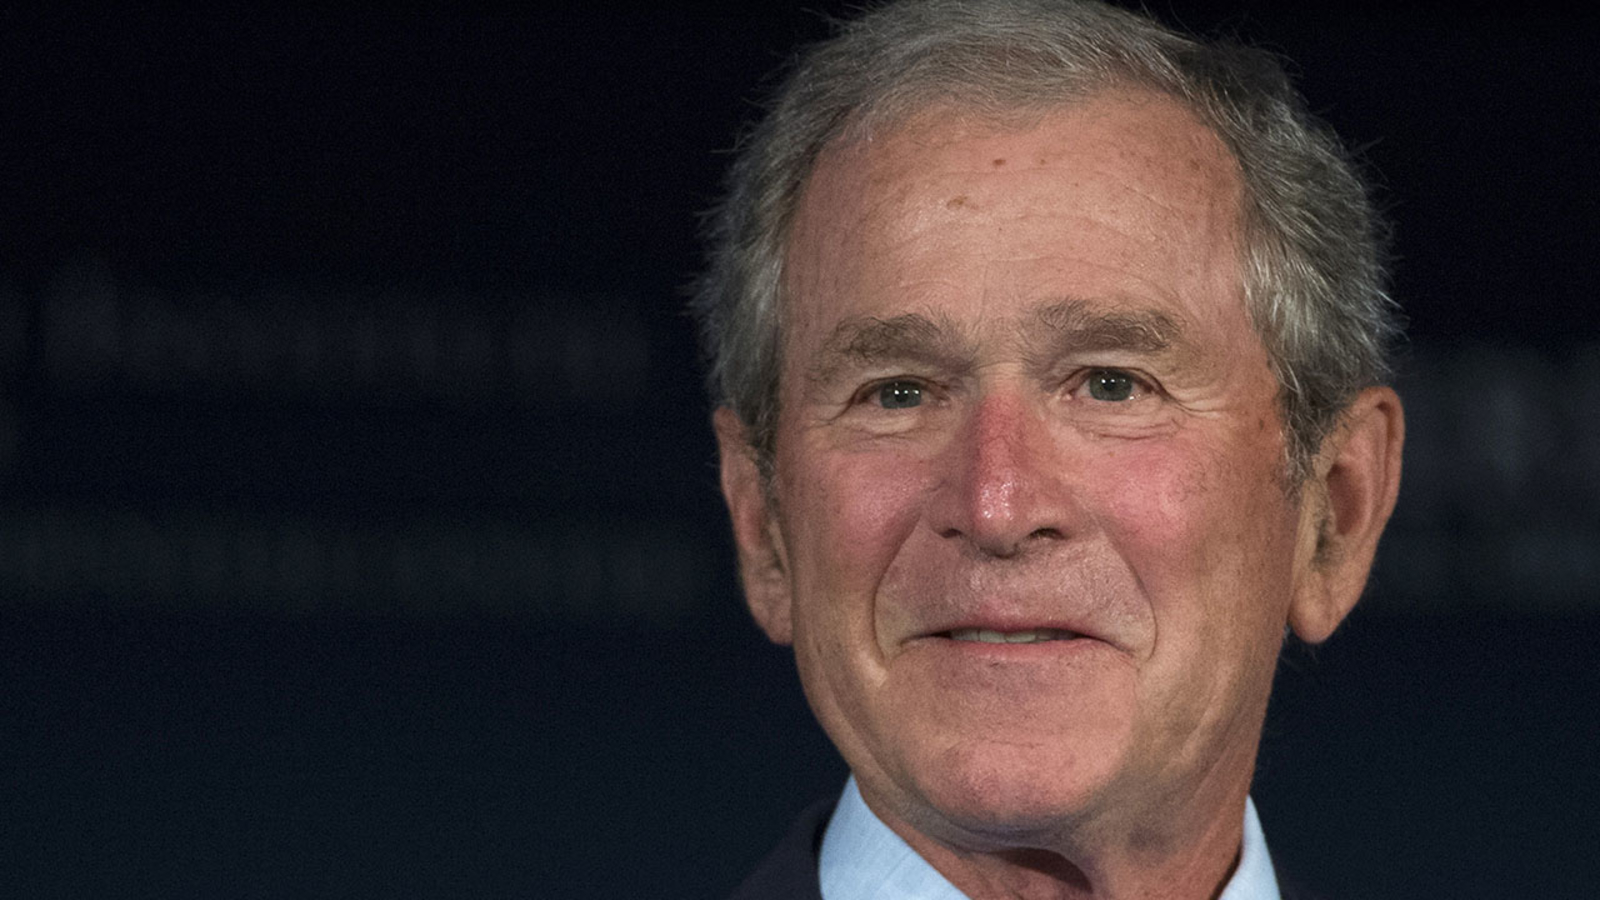 George W. Bush makes surprise appearance for jury duty ...